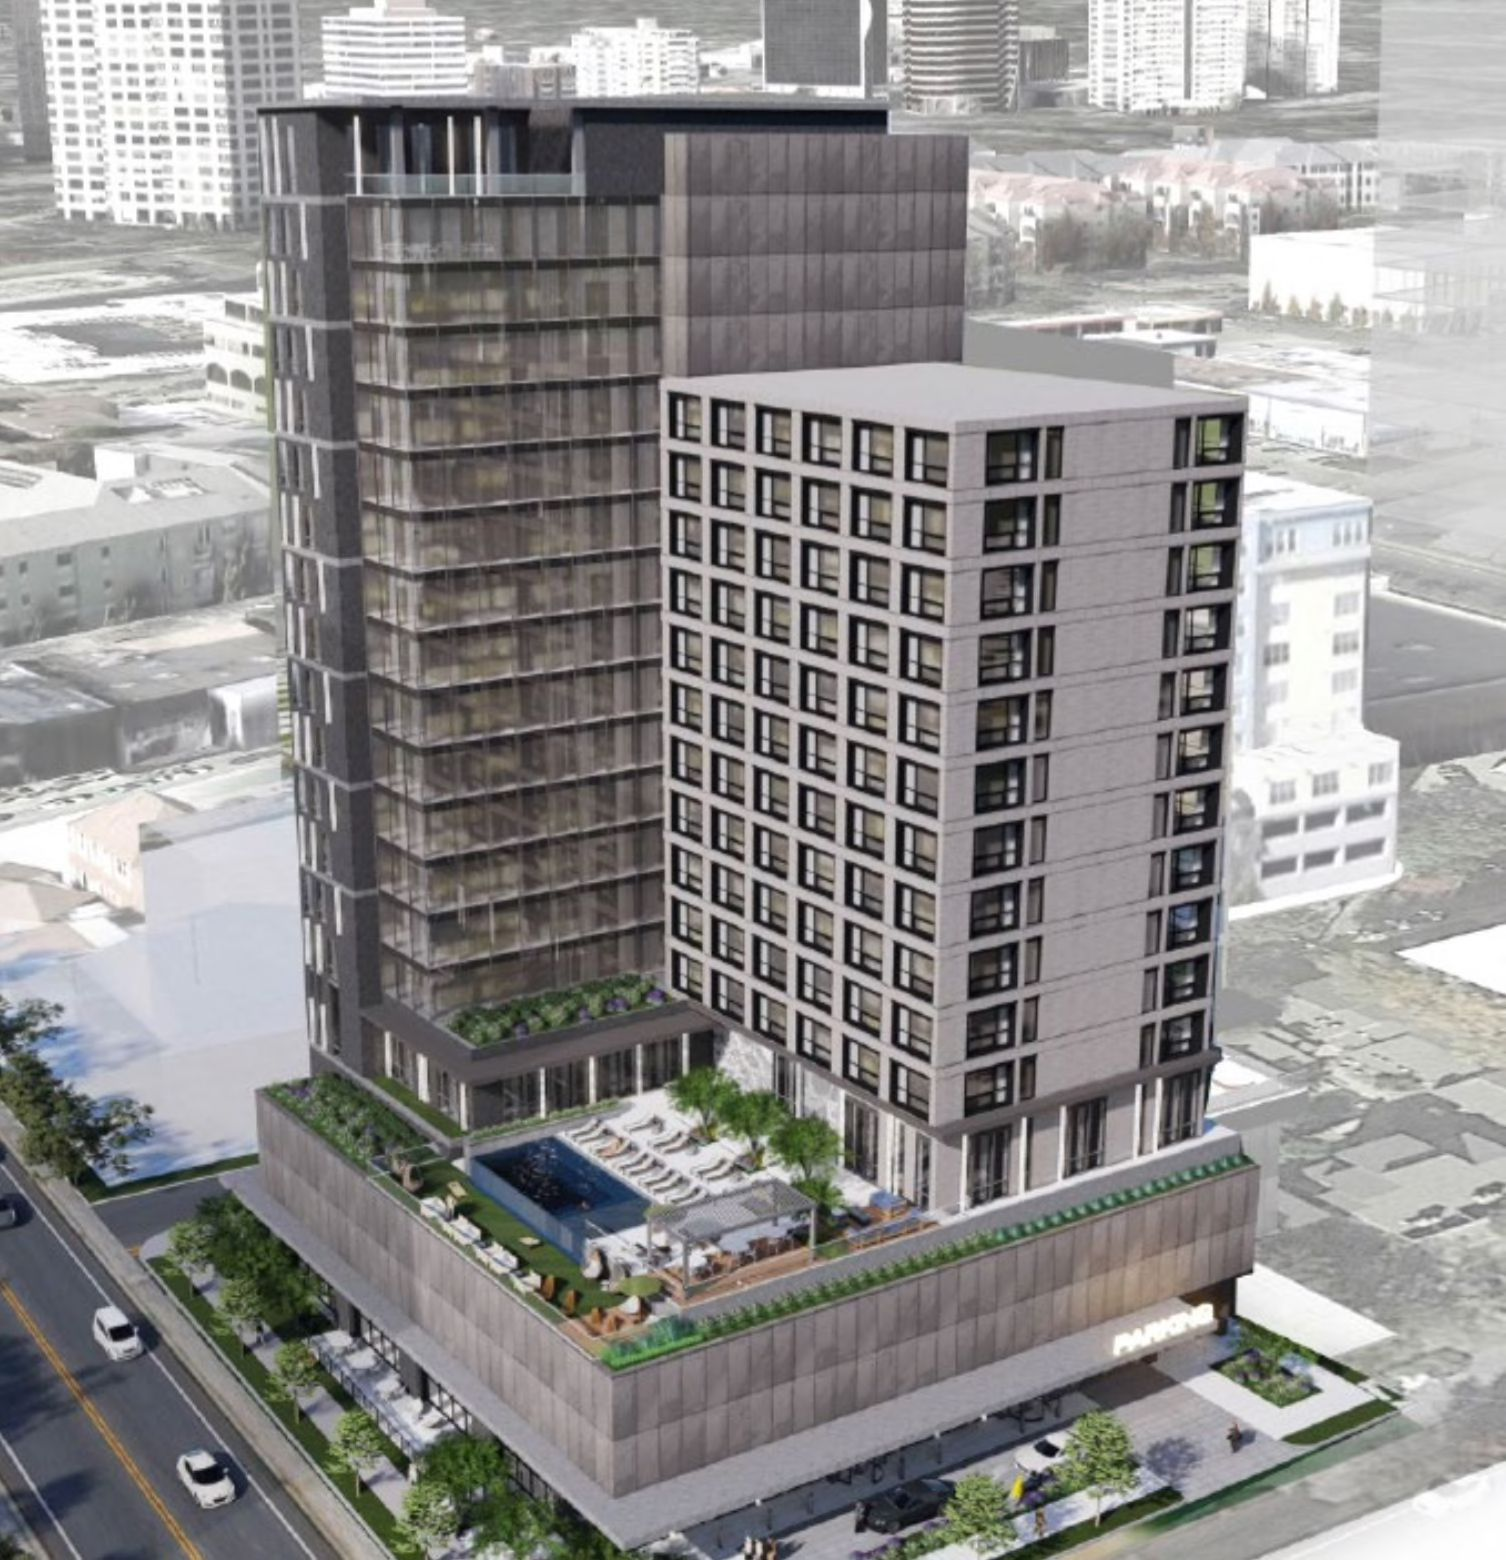 Previous owners planned a 19-story Hilton hotel on the site.